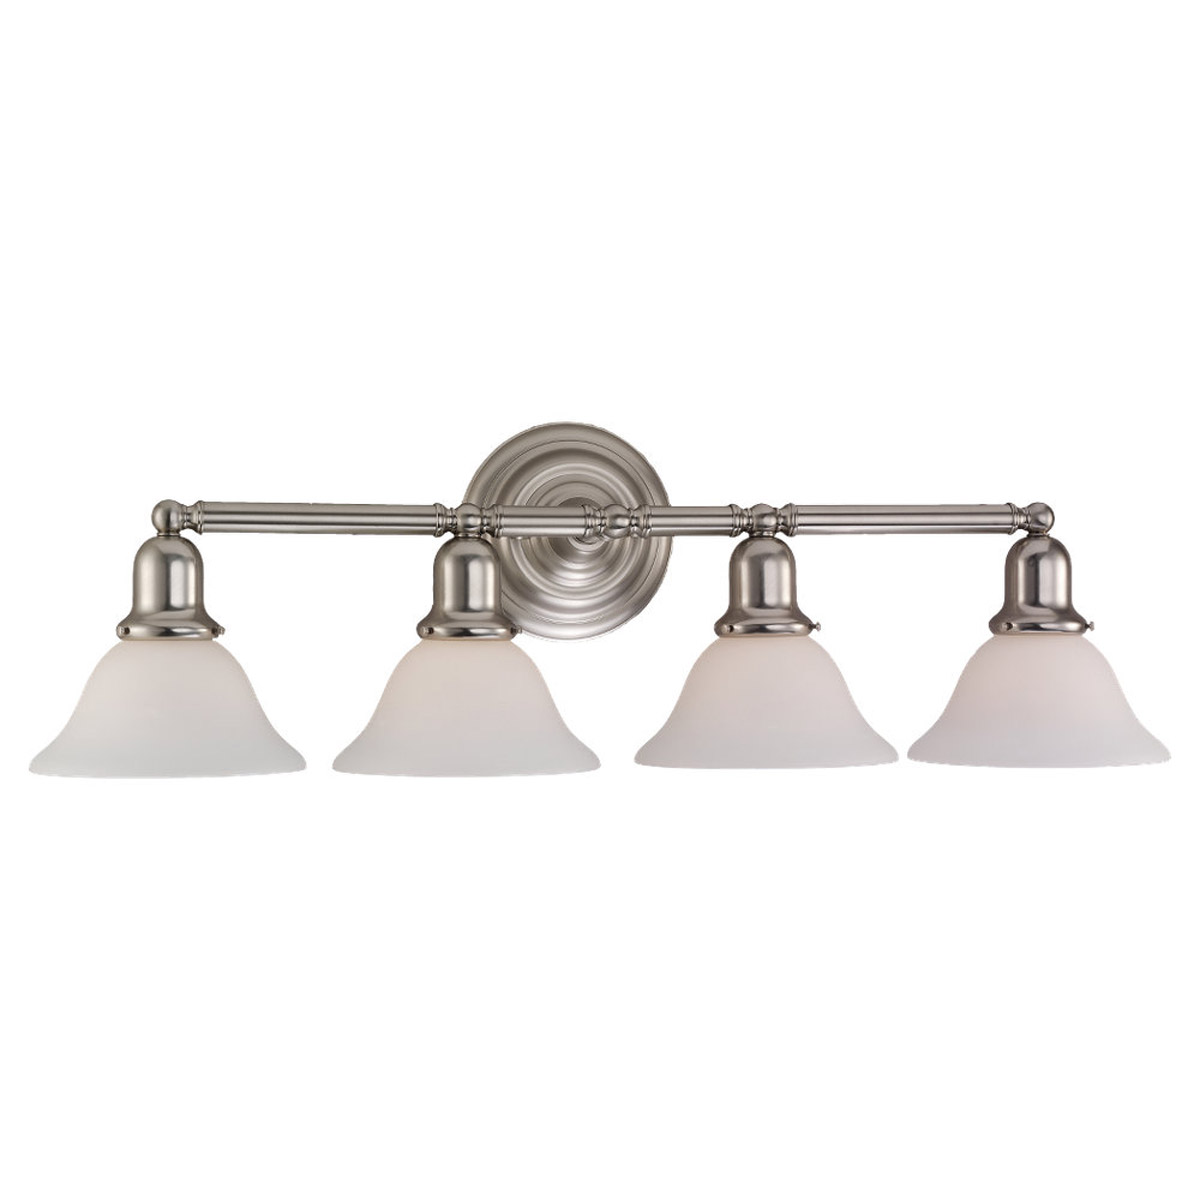 Sea Gull Lighting Sussex 4 Light Bath Vanity in Brushed Nickel 44063-962